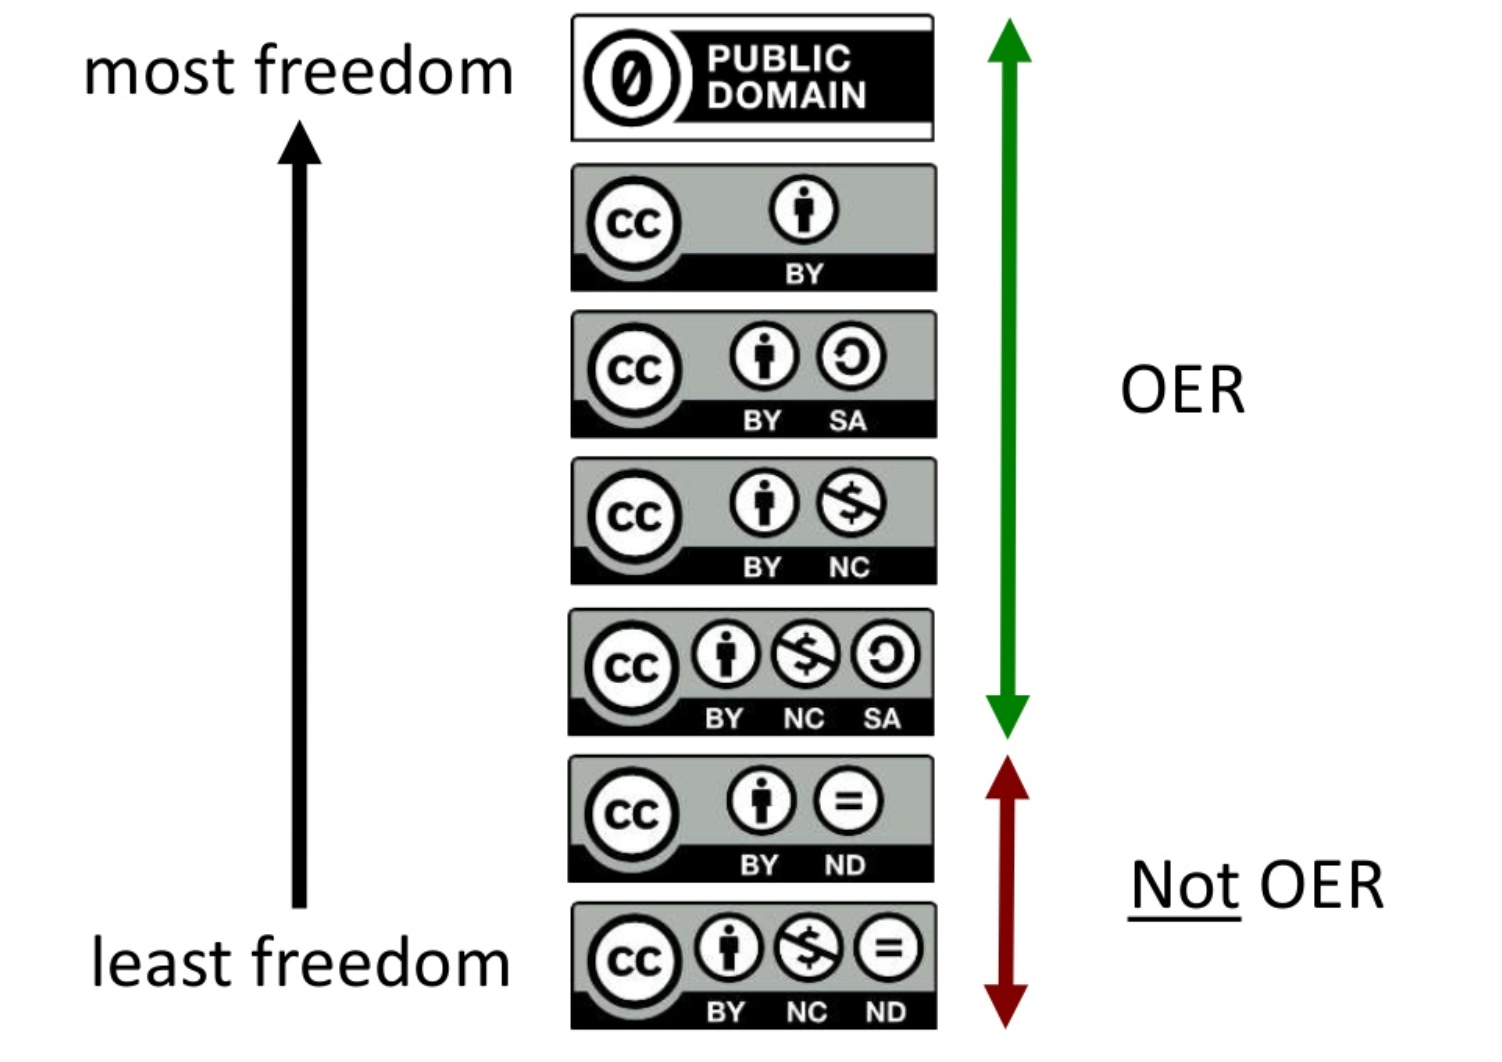 Creative Commons licenses span from very restrictive to completely free of copyright restrictions